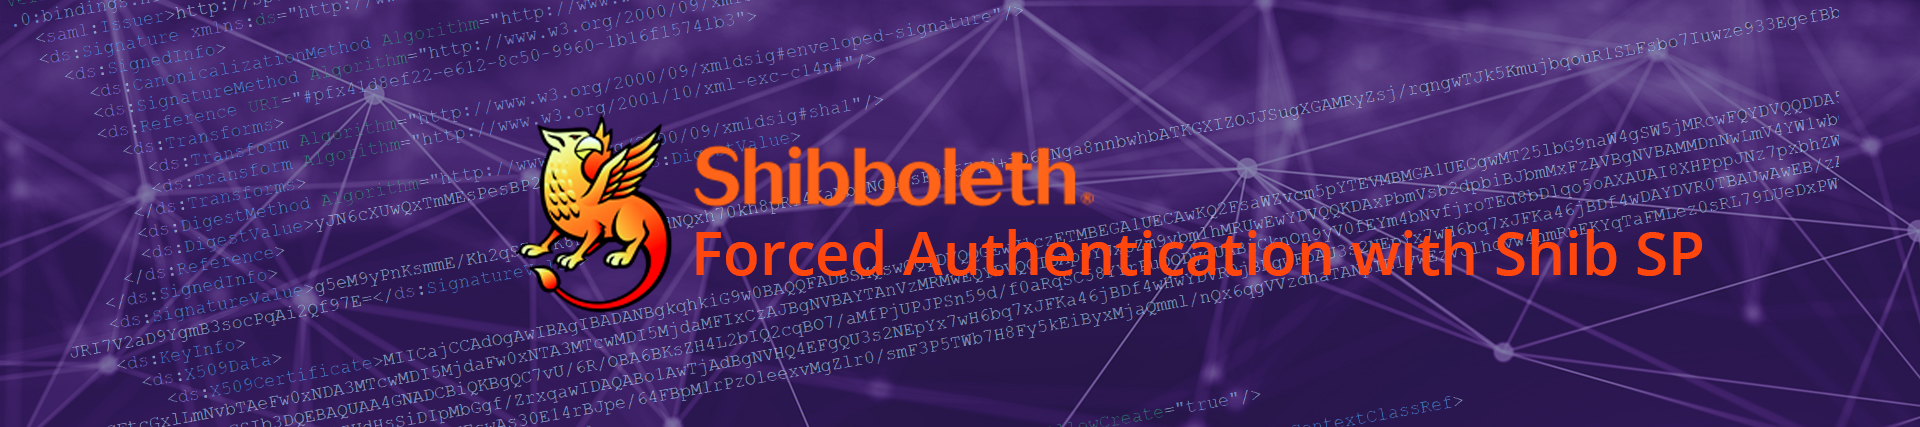 Forced Authentication with Shibboleth SP